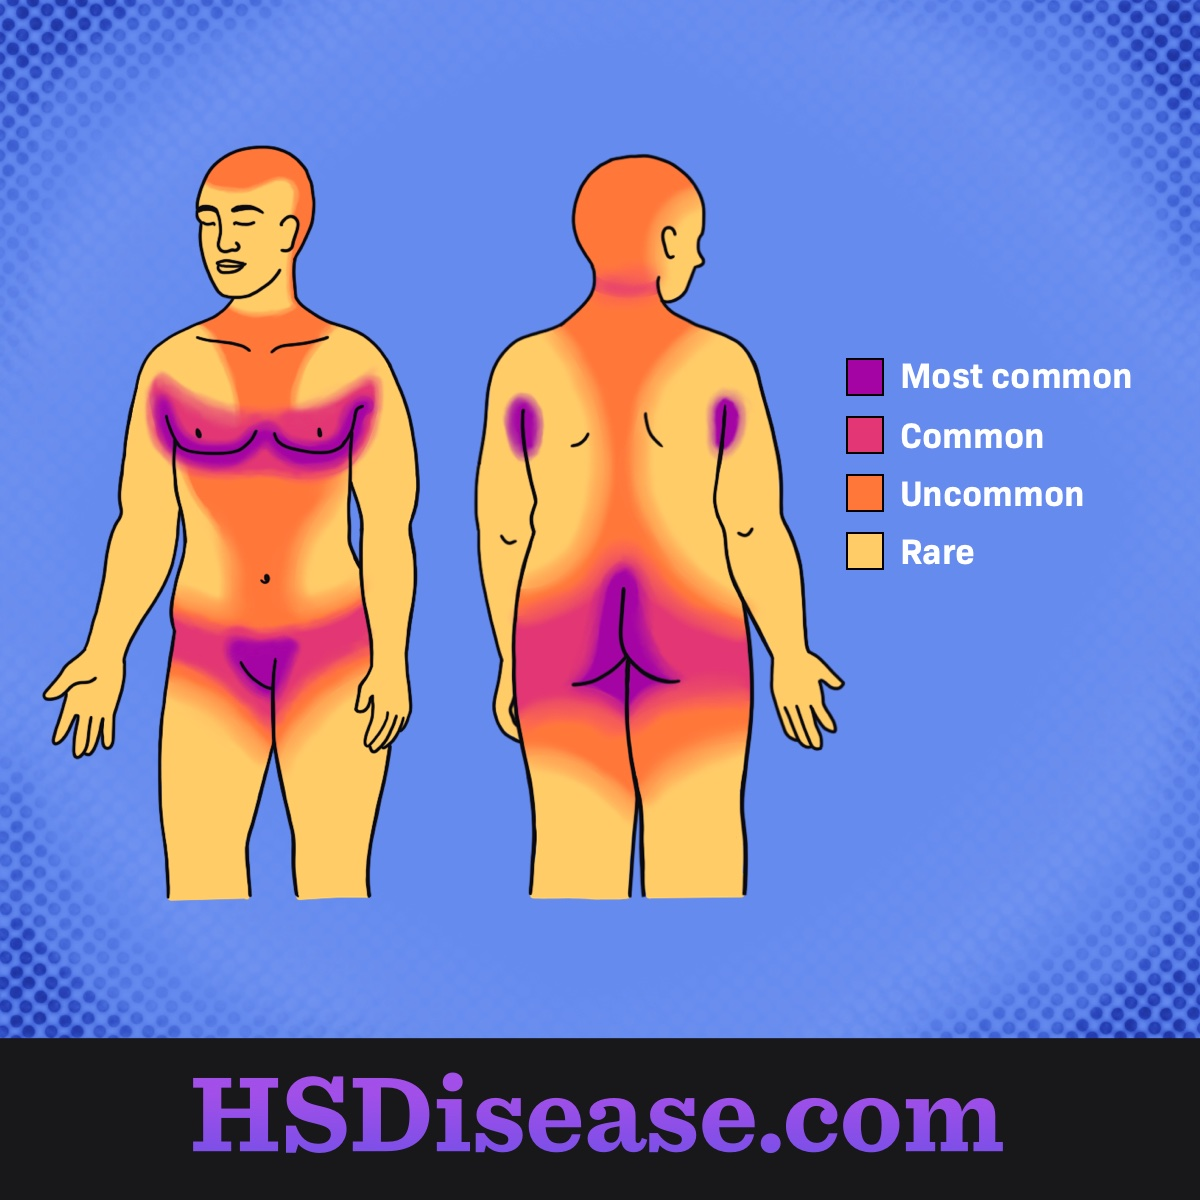 Areas of the body most affected by HS.